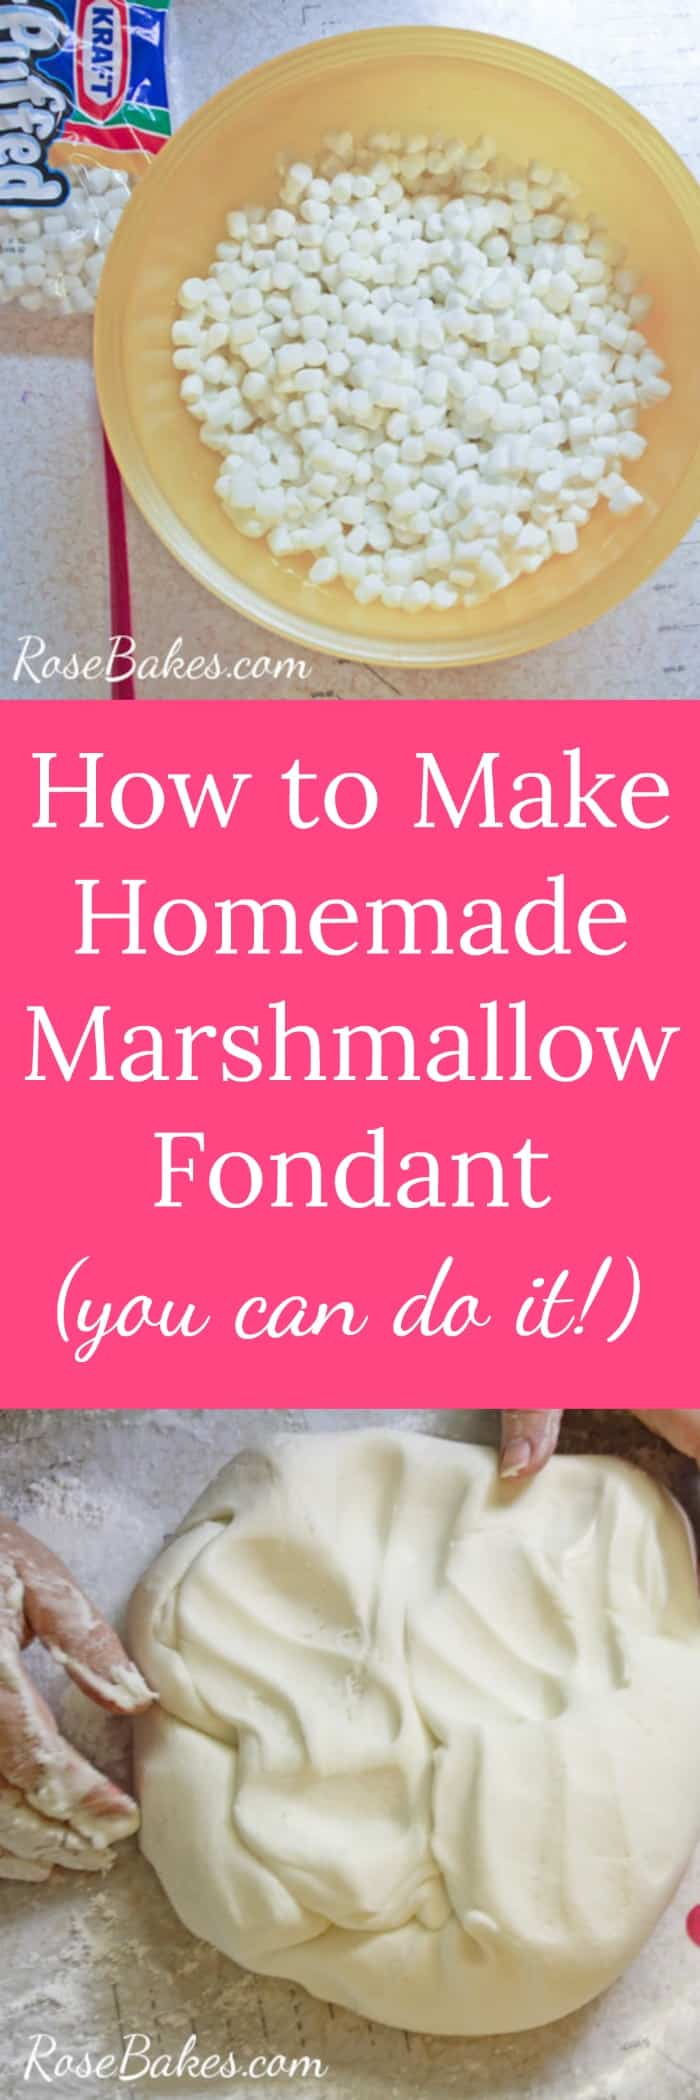 How to Make True Black Marshmallow Fondant How to Make True Black Marshmallow Fondant new pics